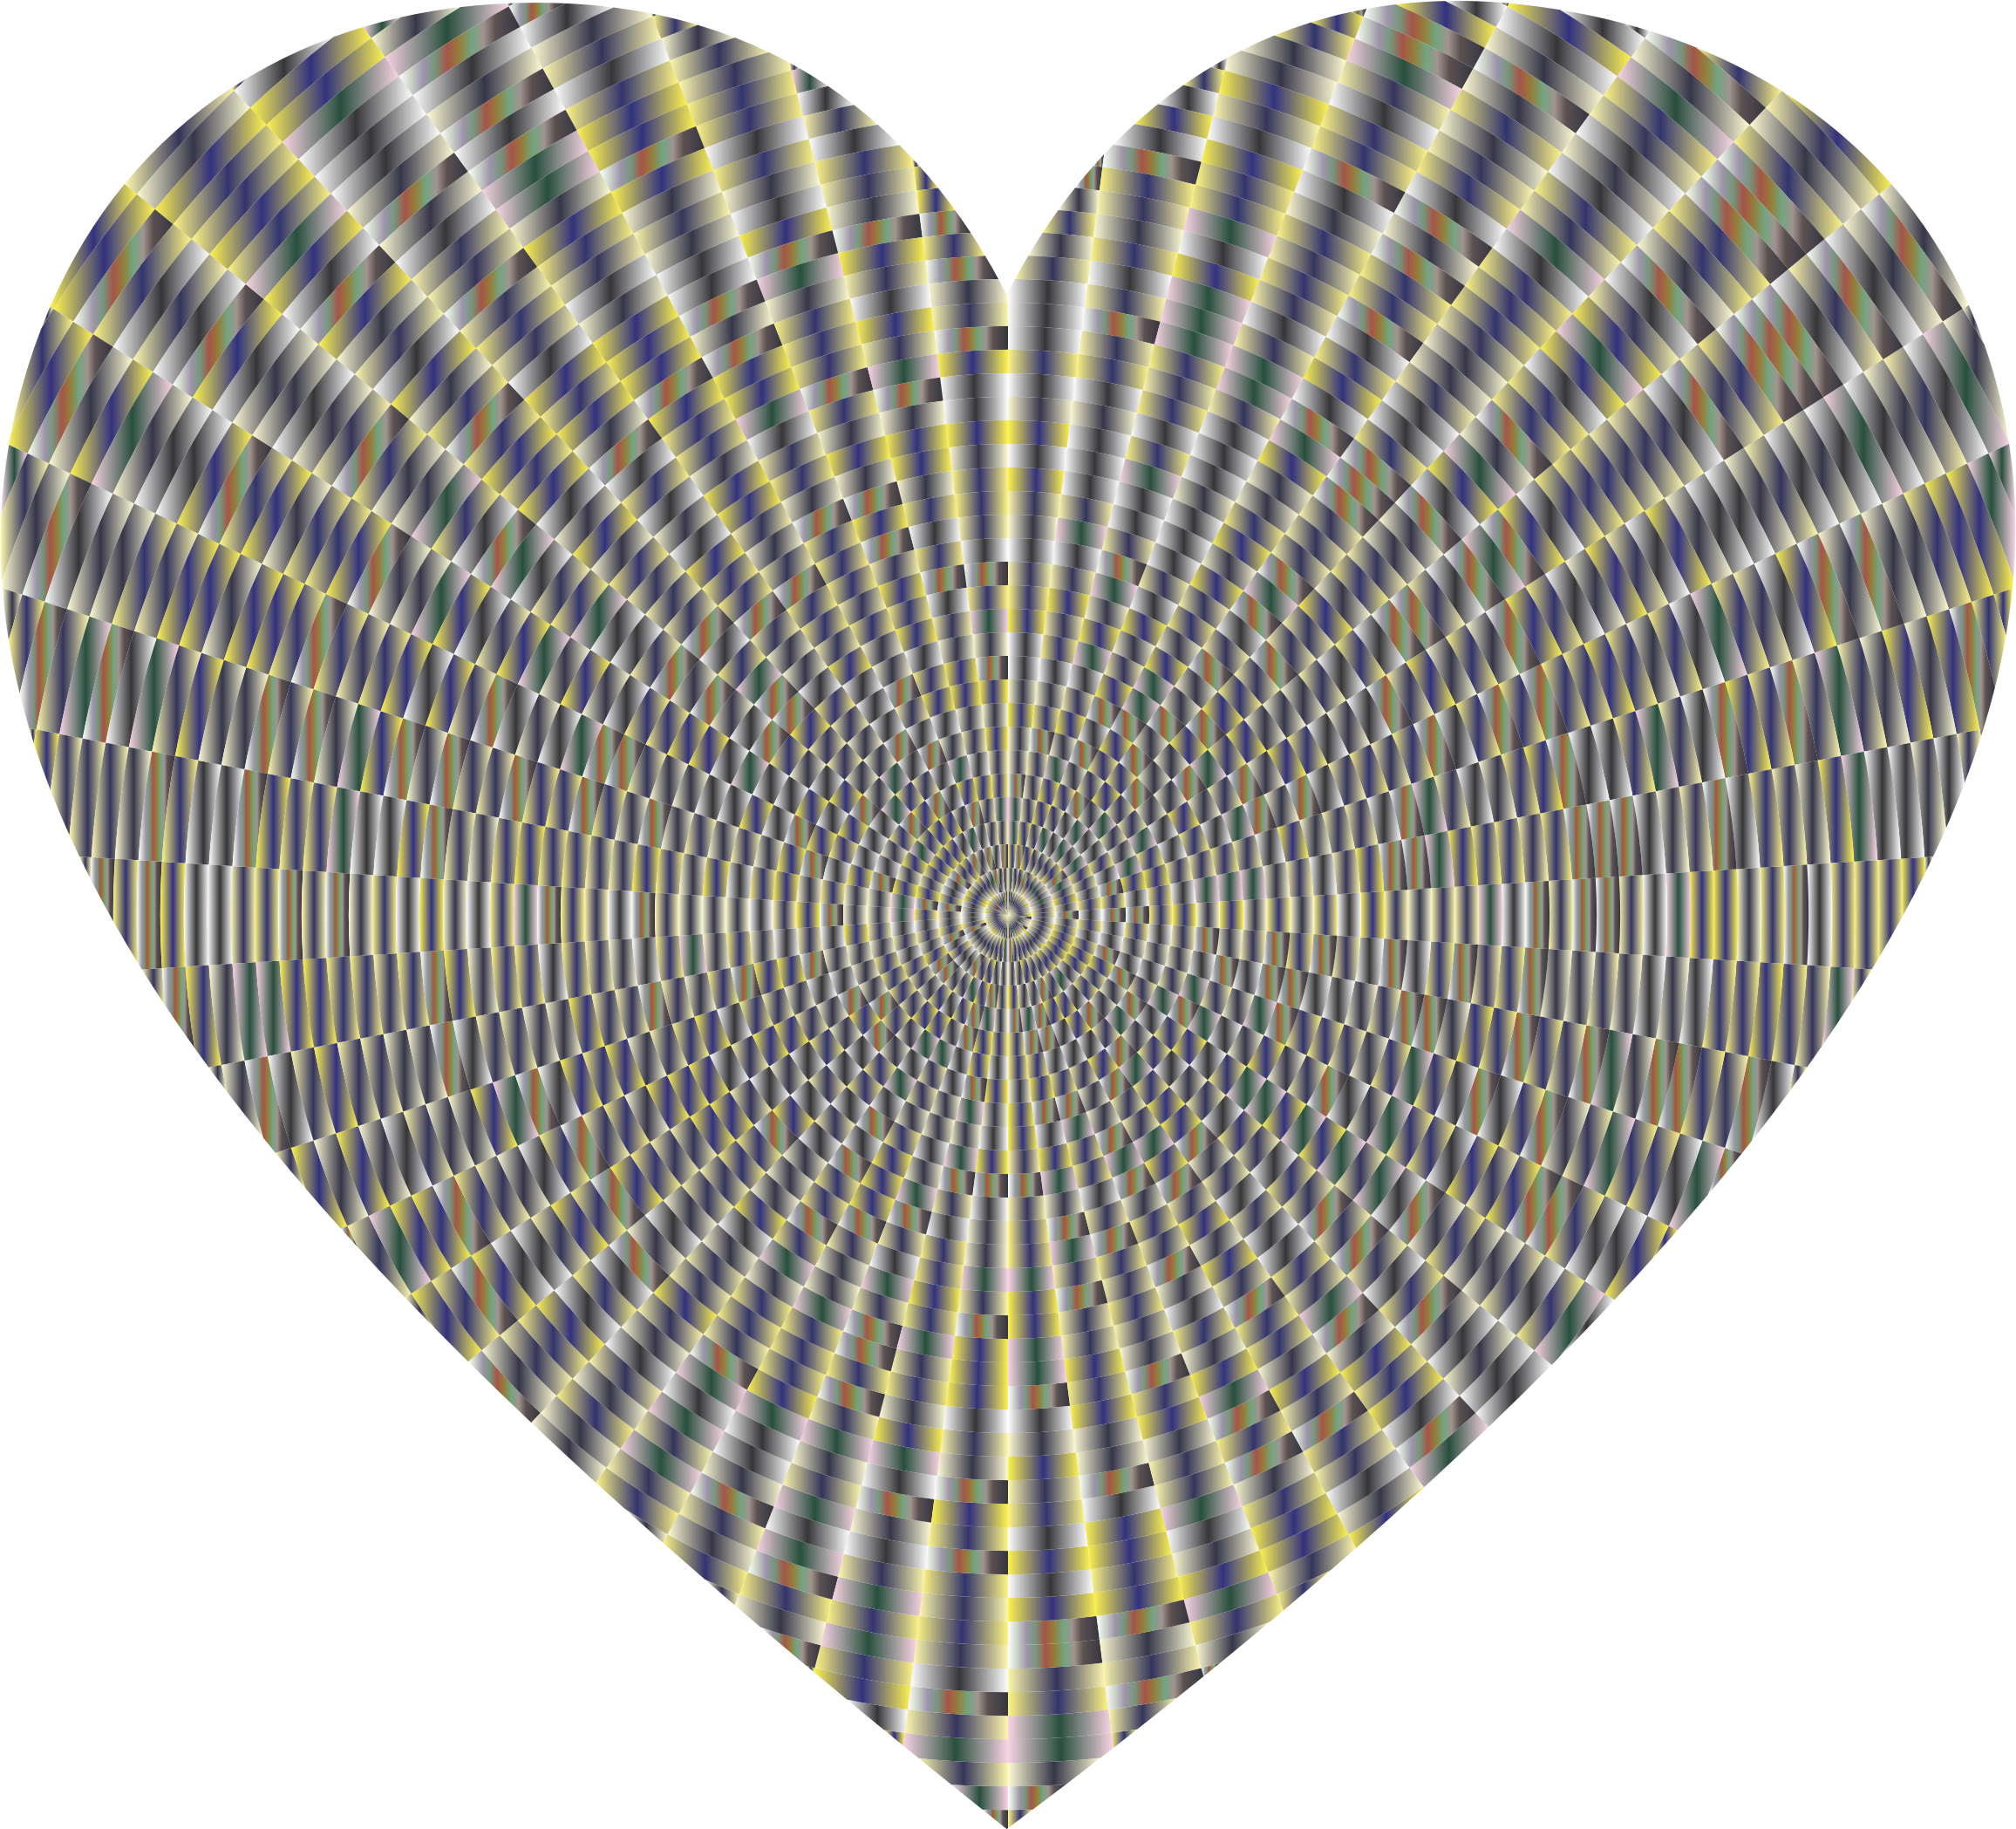 Vortex Heart 9 by GDJ